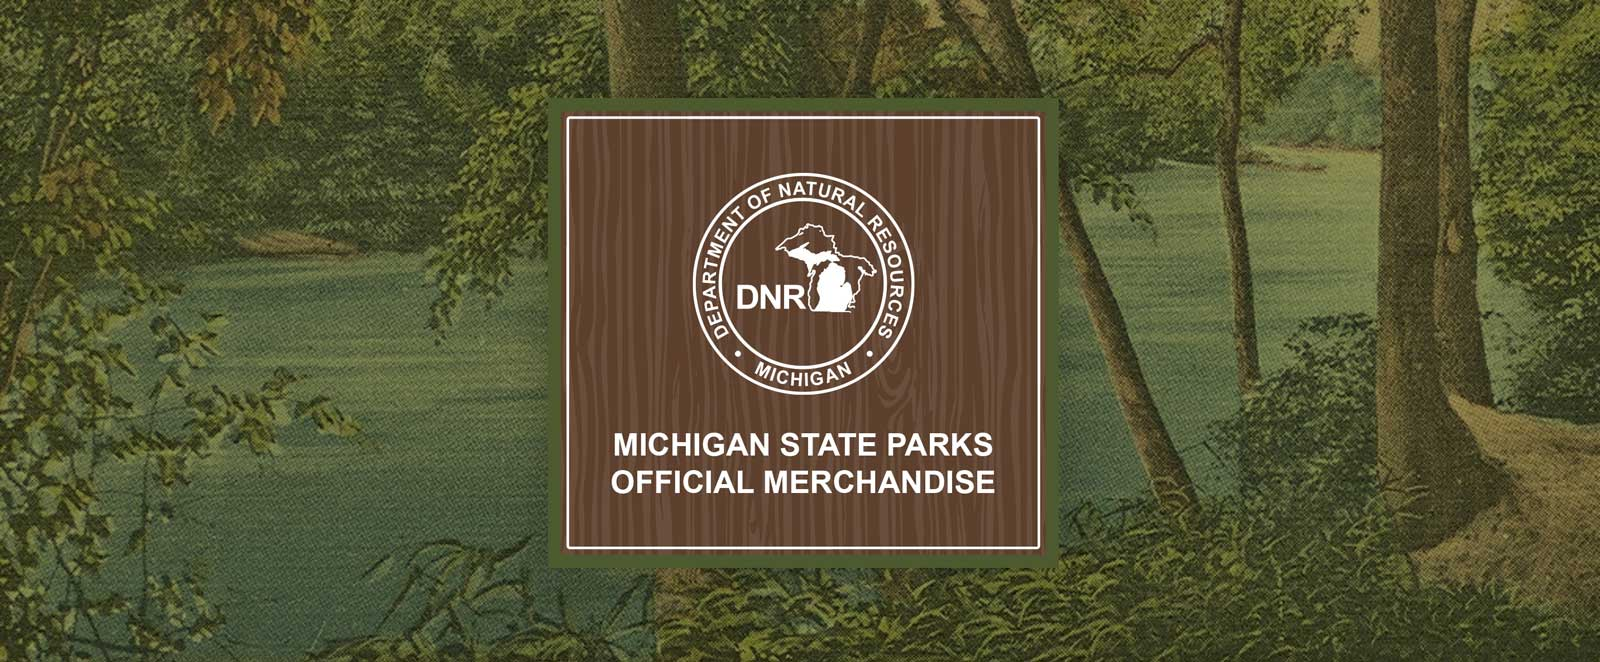 Michigan State Parks Official Merchandise